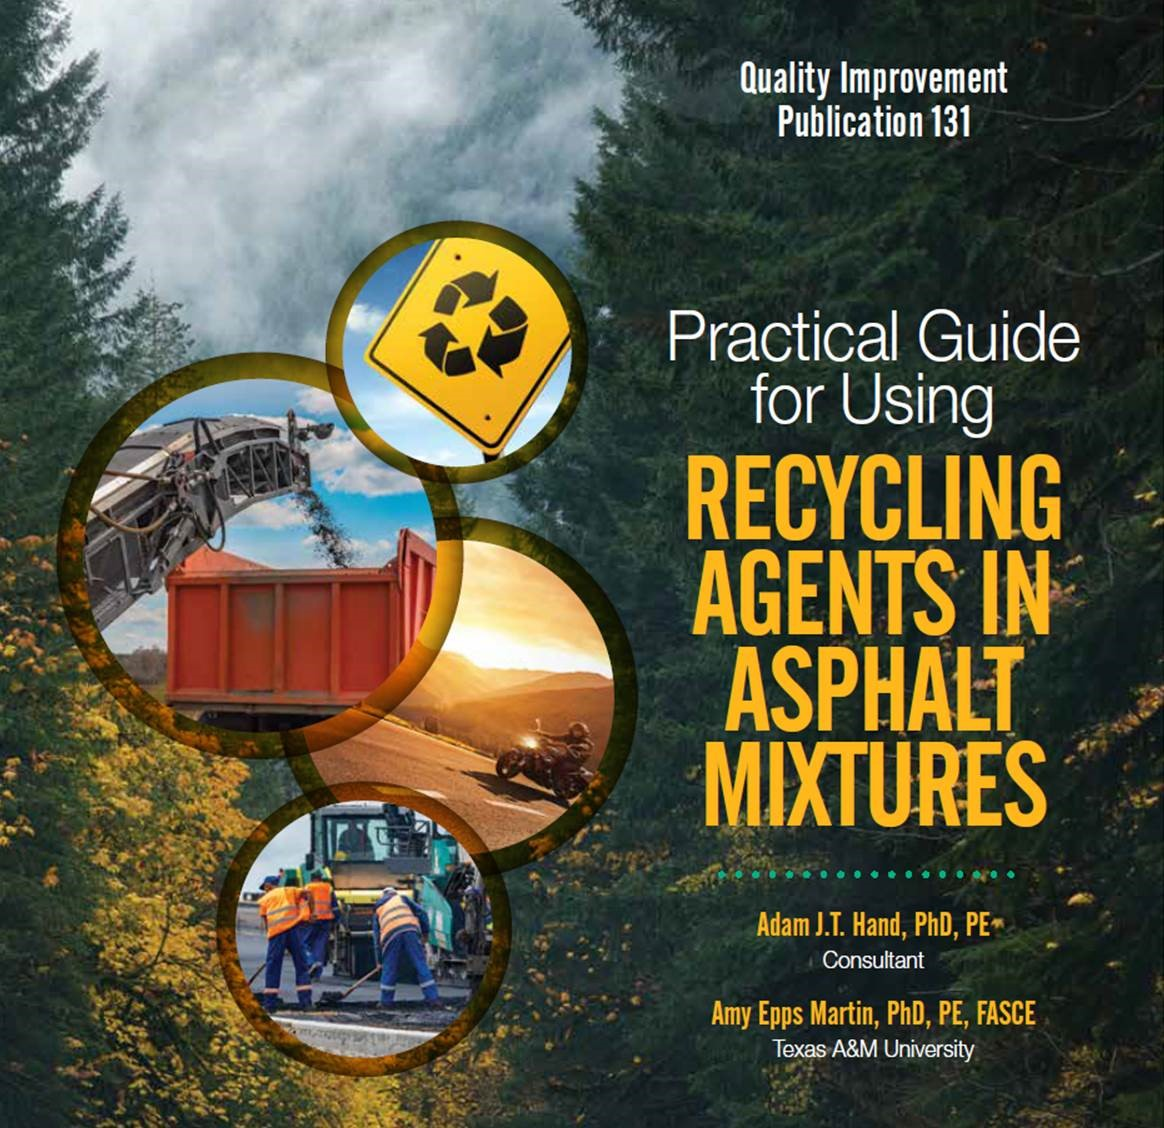 Practical Guide for Using Recycling Agents in Asphalt Mixtures PDF